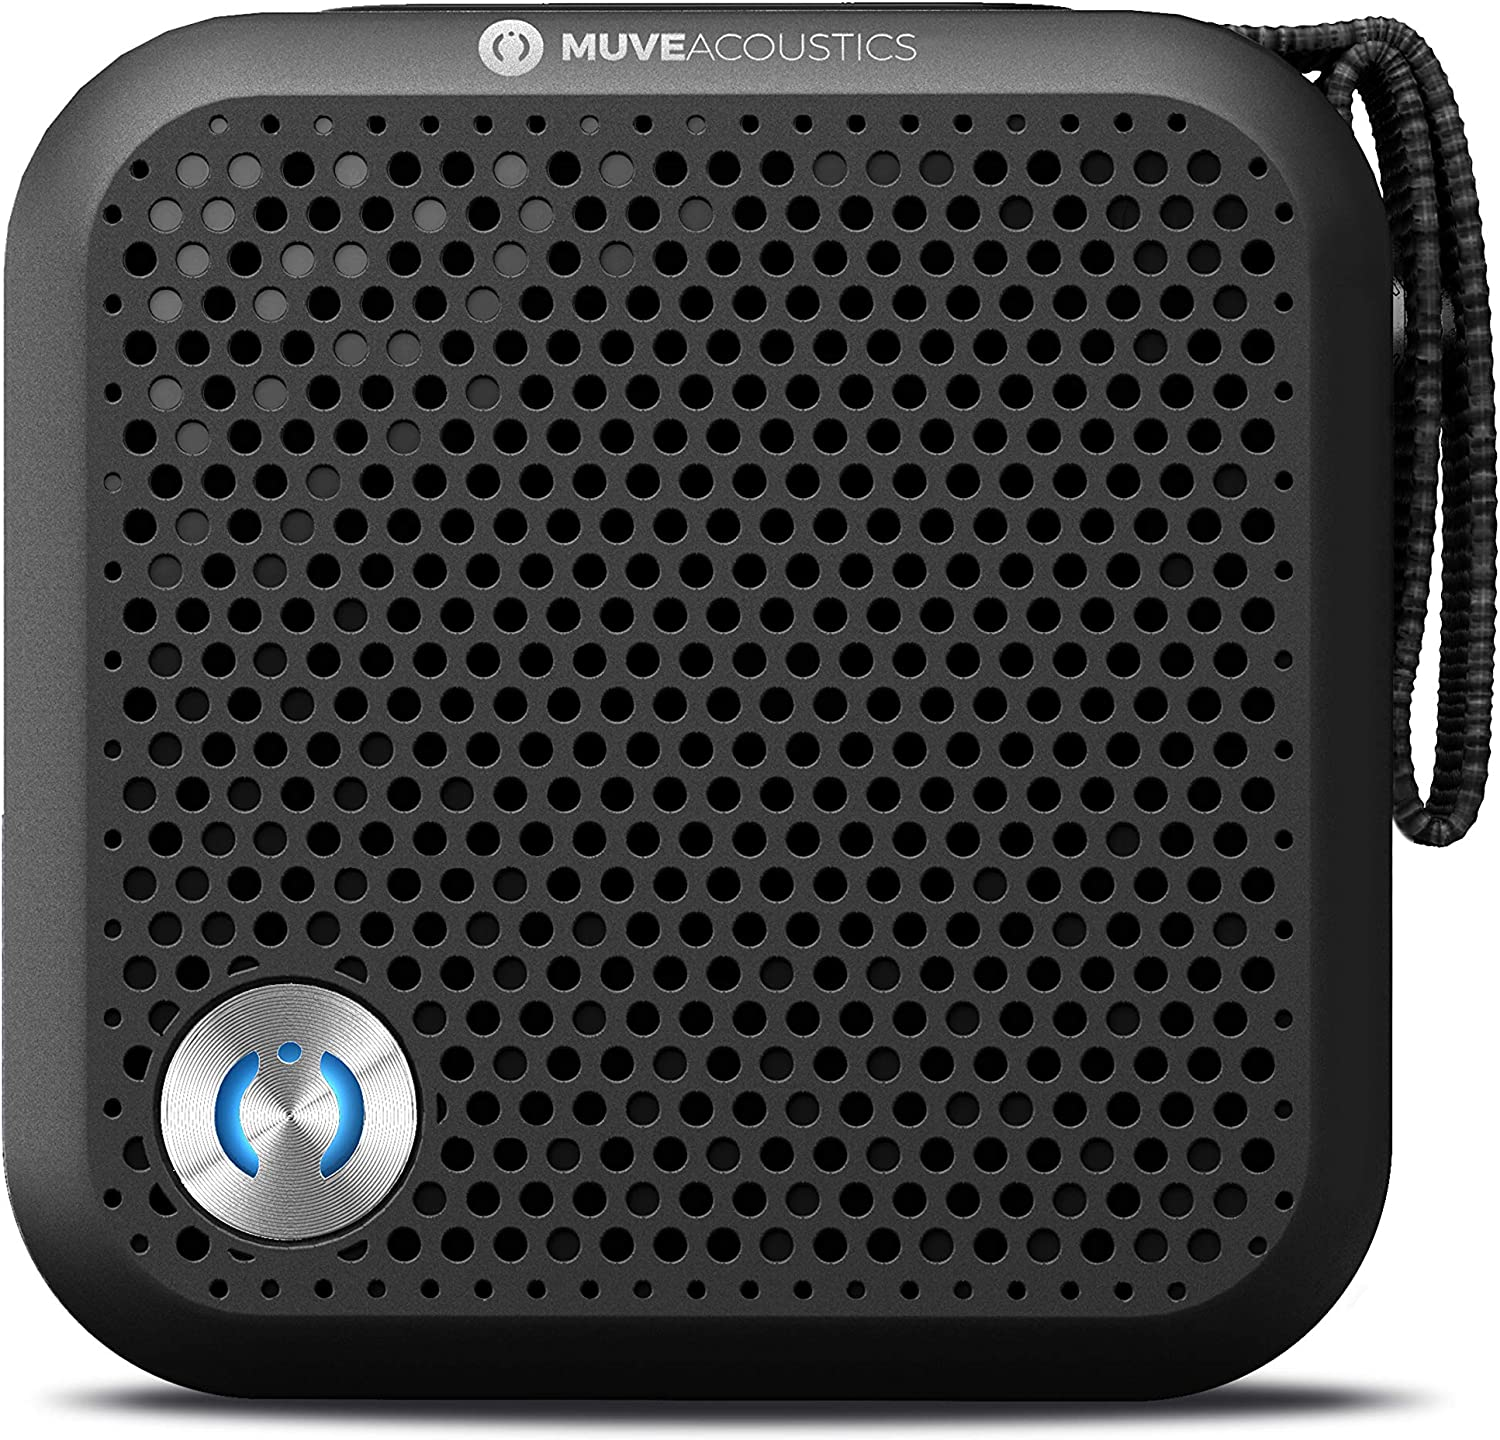 Amazon Com Muveacoustics A Plus Portable Bluetooth Speaker Loudest Wireless Stereo Sound For Home And Travel With Up To 7 Hours Of Playtime Black Home Audio Theater